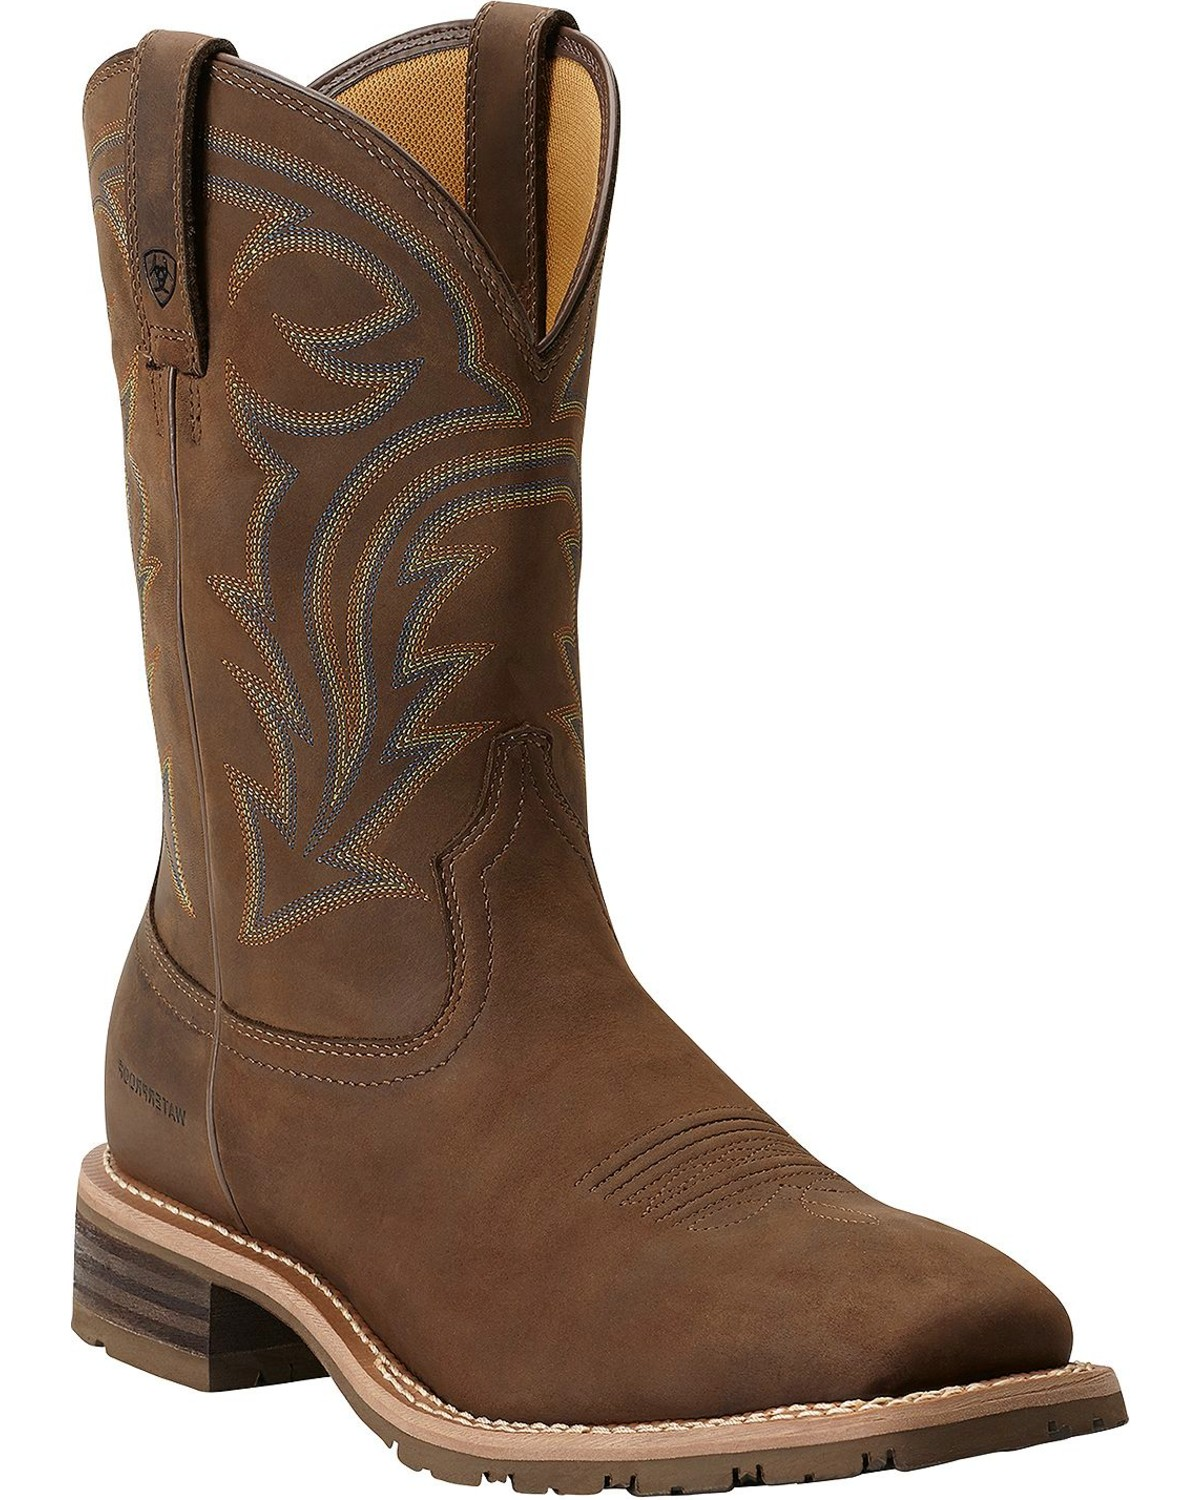 Ariat Hybrid Rancher Waterproof Pull On Work Boots